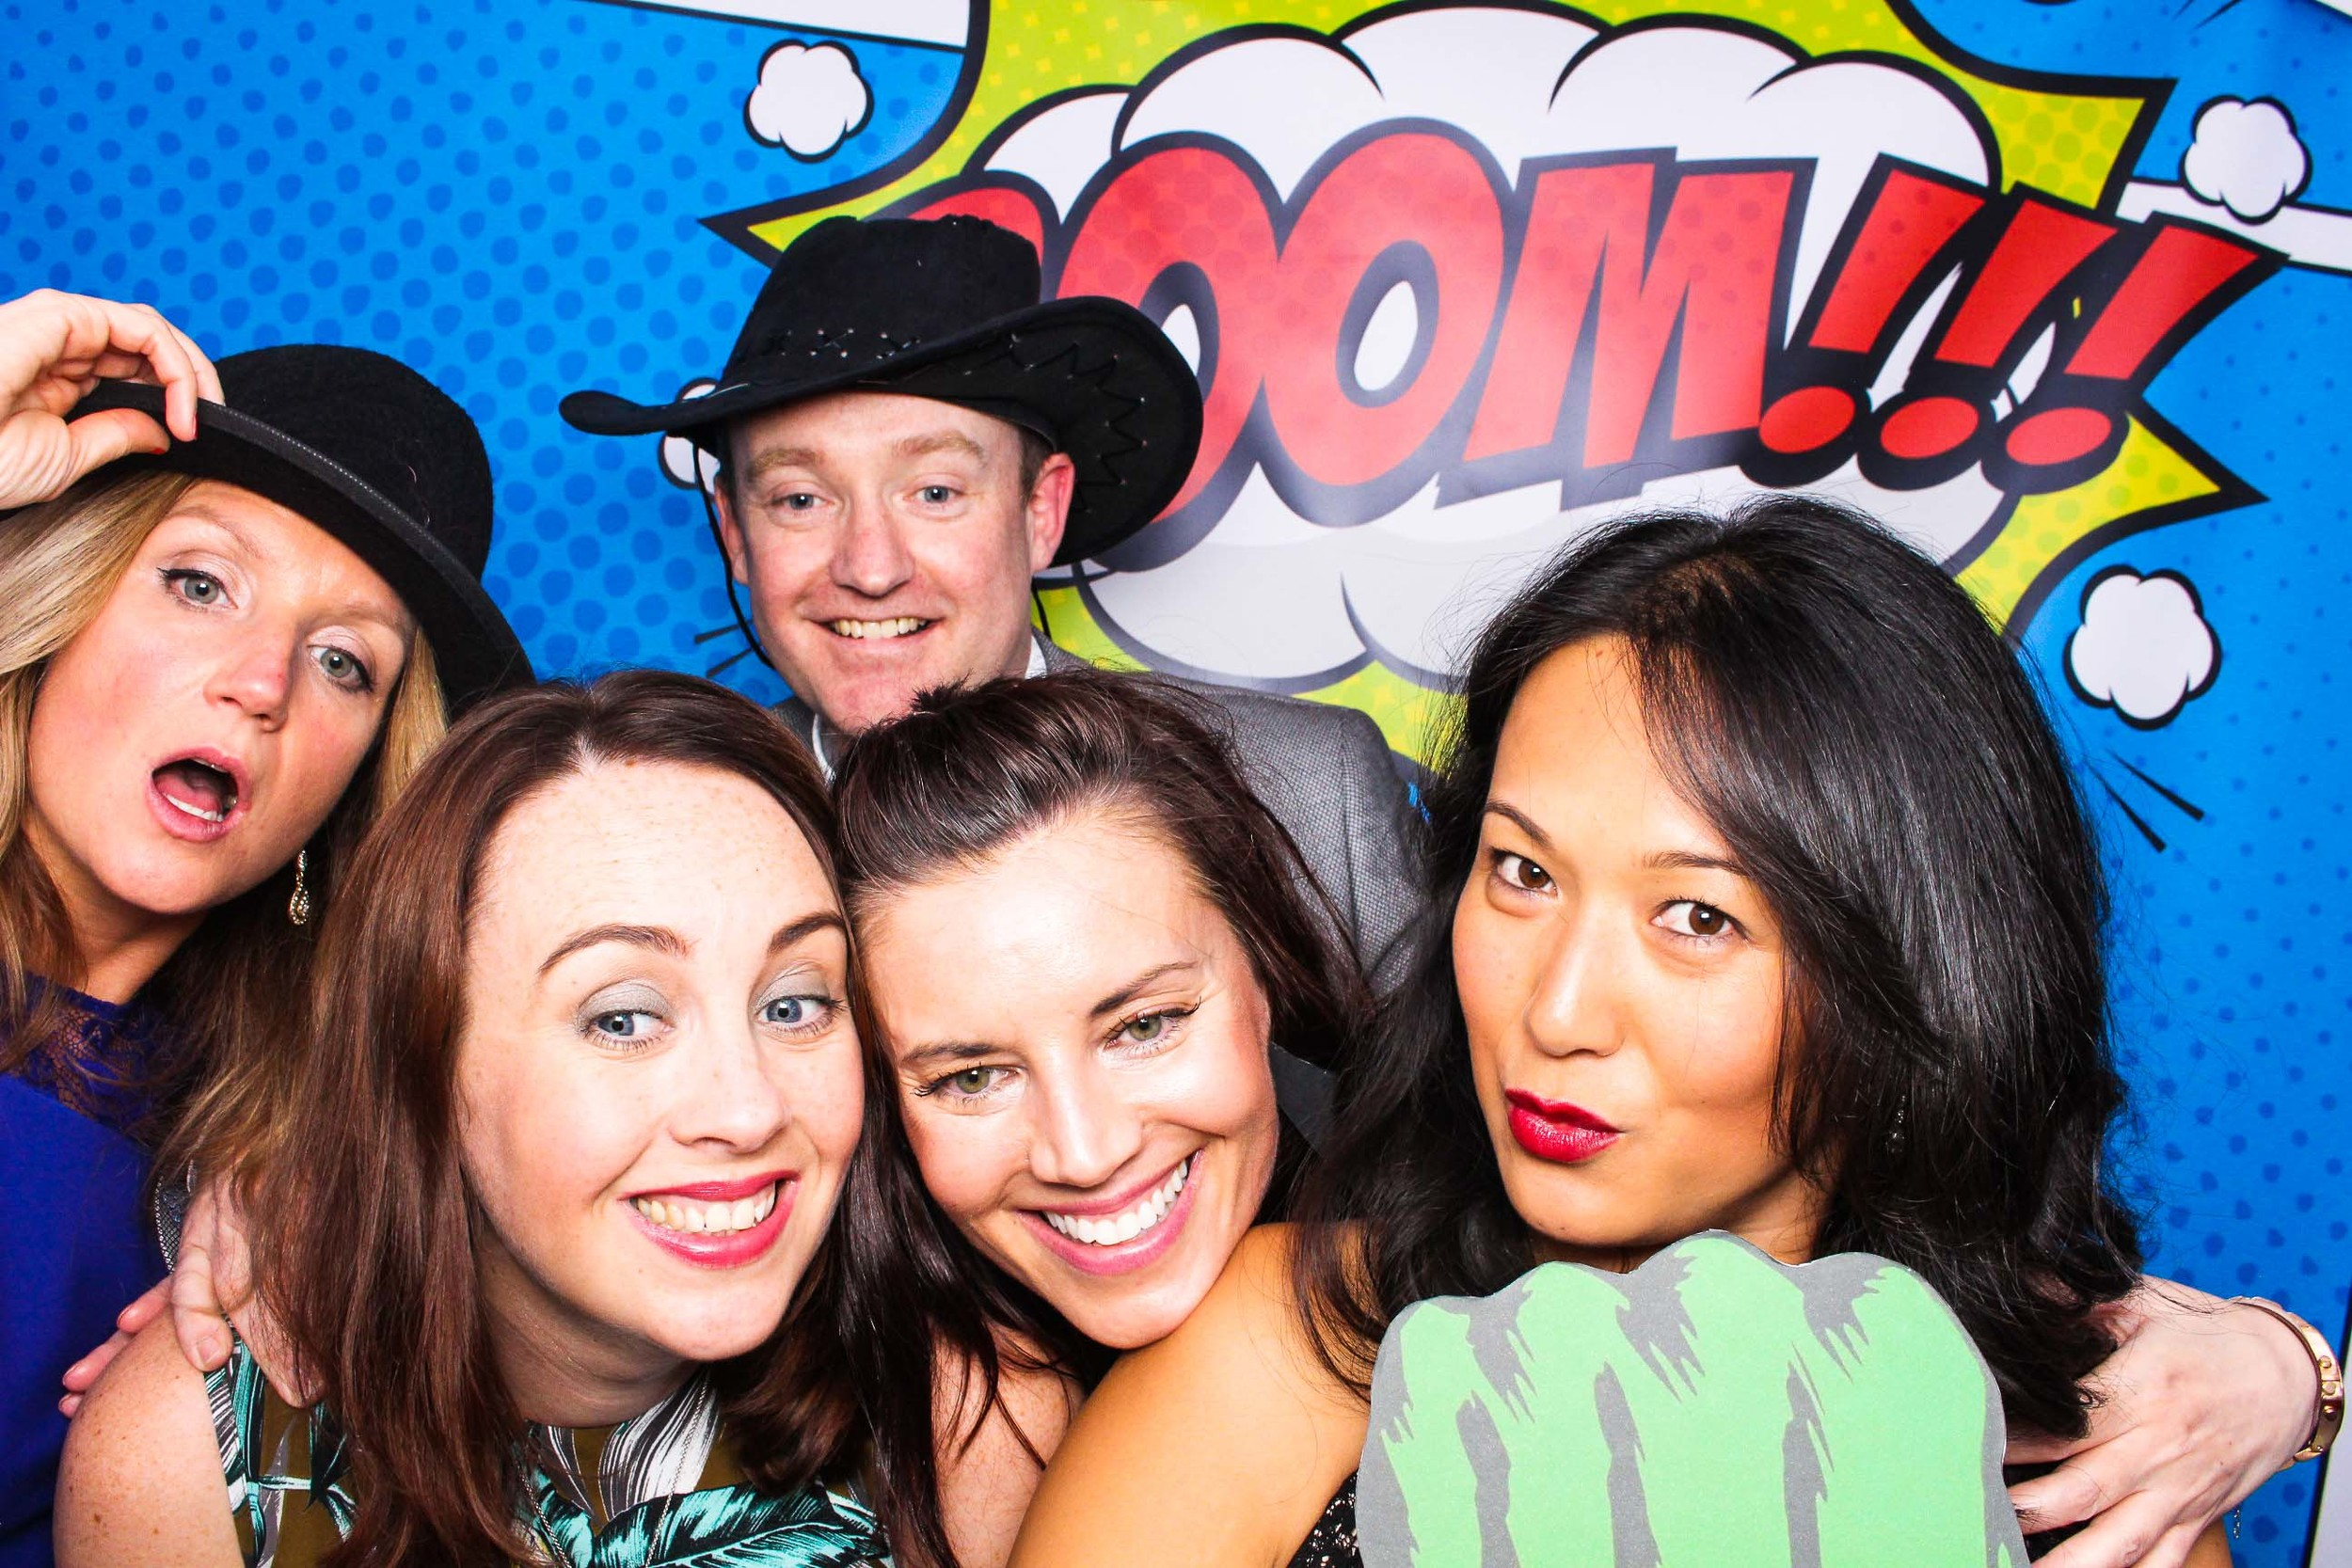 Fotoauto Photo Booth Hire - Shop Direct-167.jpg